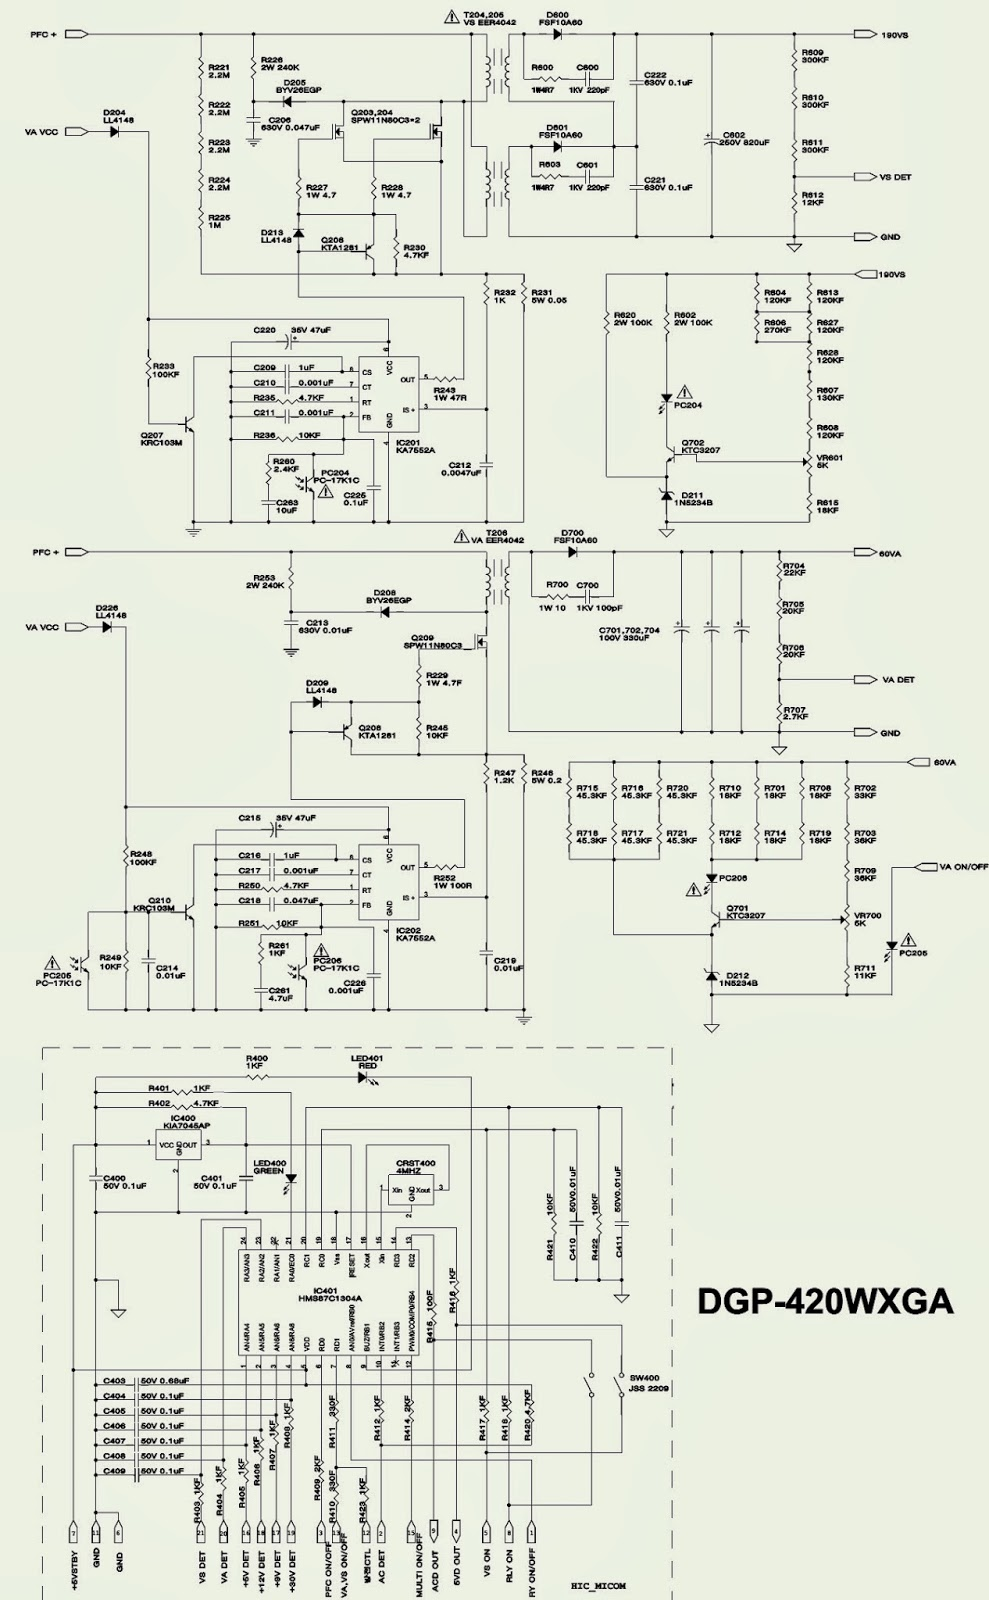 Outstanding Philips 40Pfl3606 Lcd Tv Power Supply Schematic Electro Help Wiring 101 Capemaxxcnl